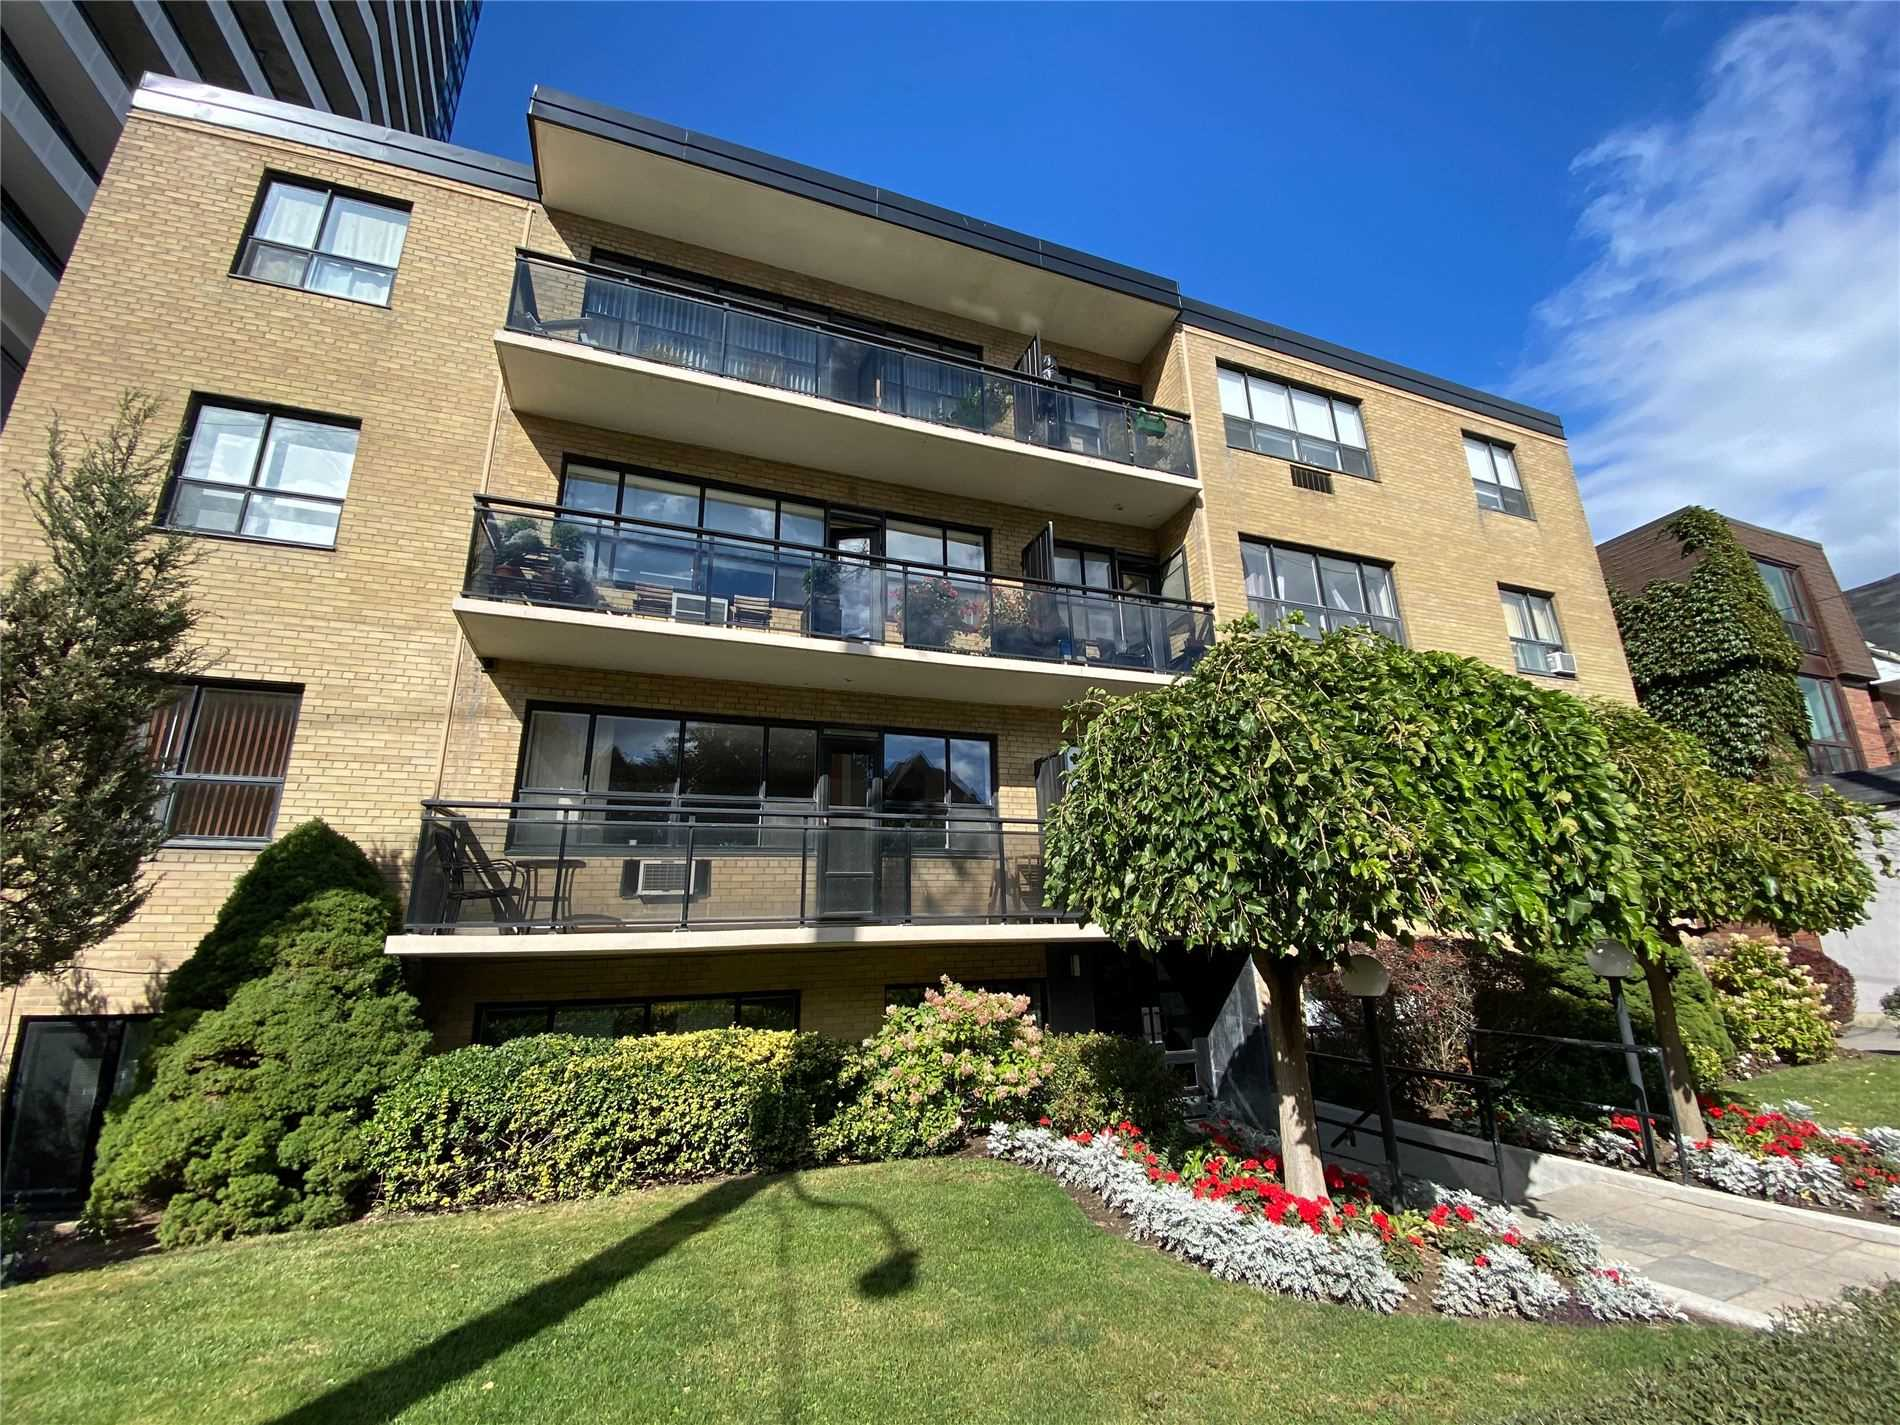 148 Soudan Ave, Toronto, Ontario M4S1V9, 1 Bedroom Bedrooms, 4 Rooms Rooms,1 BathroomBathrooms,Co-ownership Apt,For Sale,Soudan,C4937247